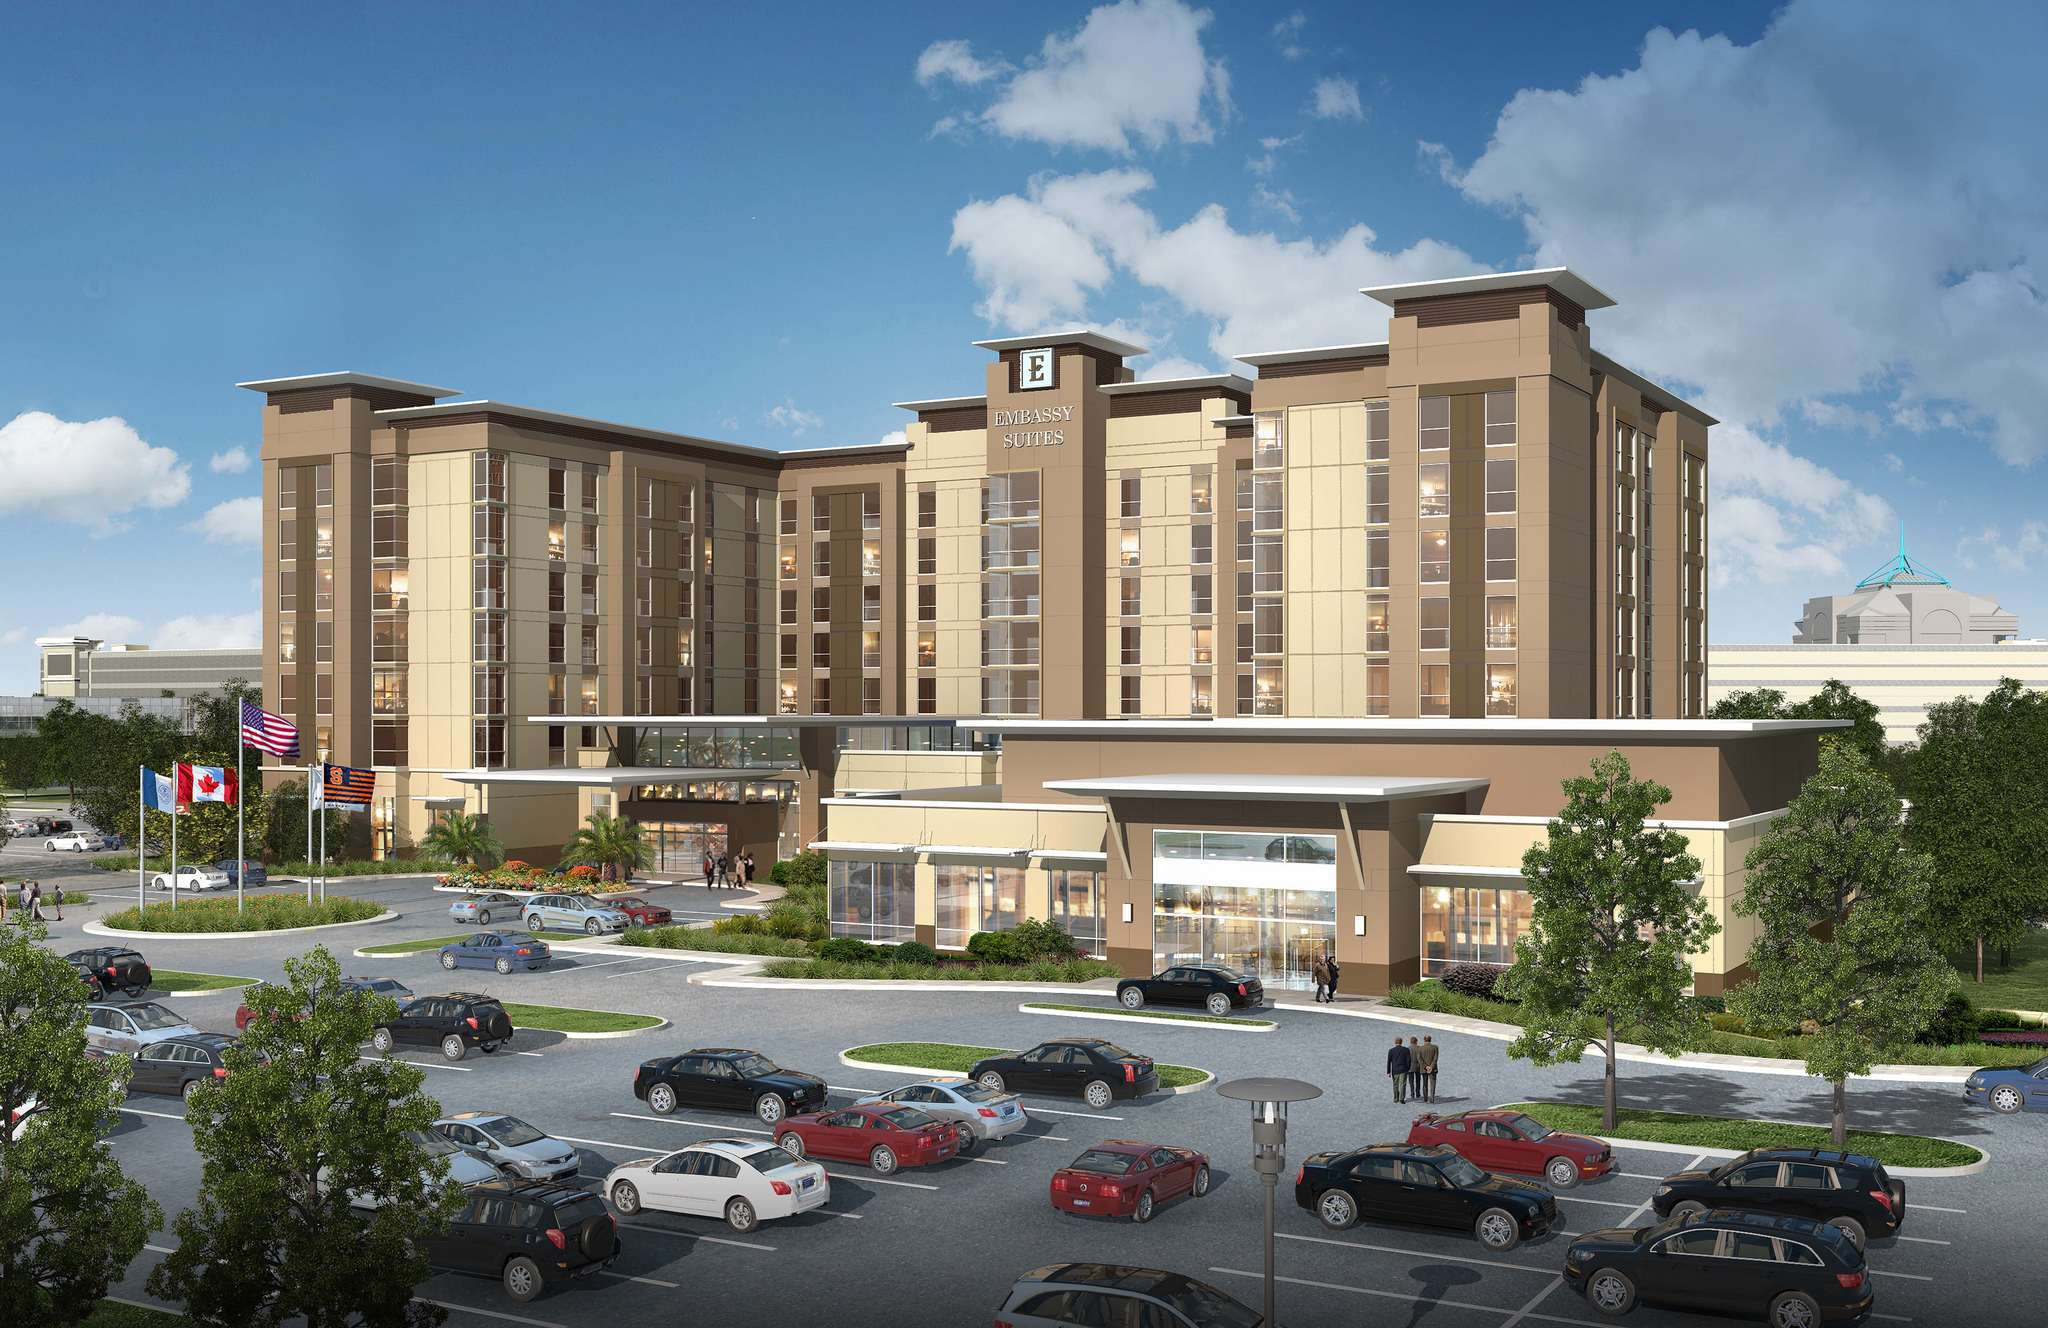 48 Million Destiny Usa Hotel To Open In Fall 2017 Partner Announced Syracuse